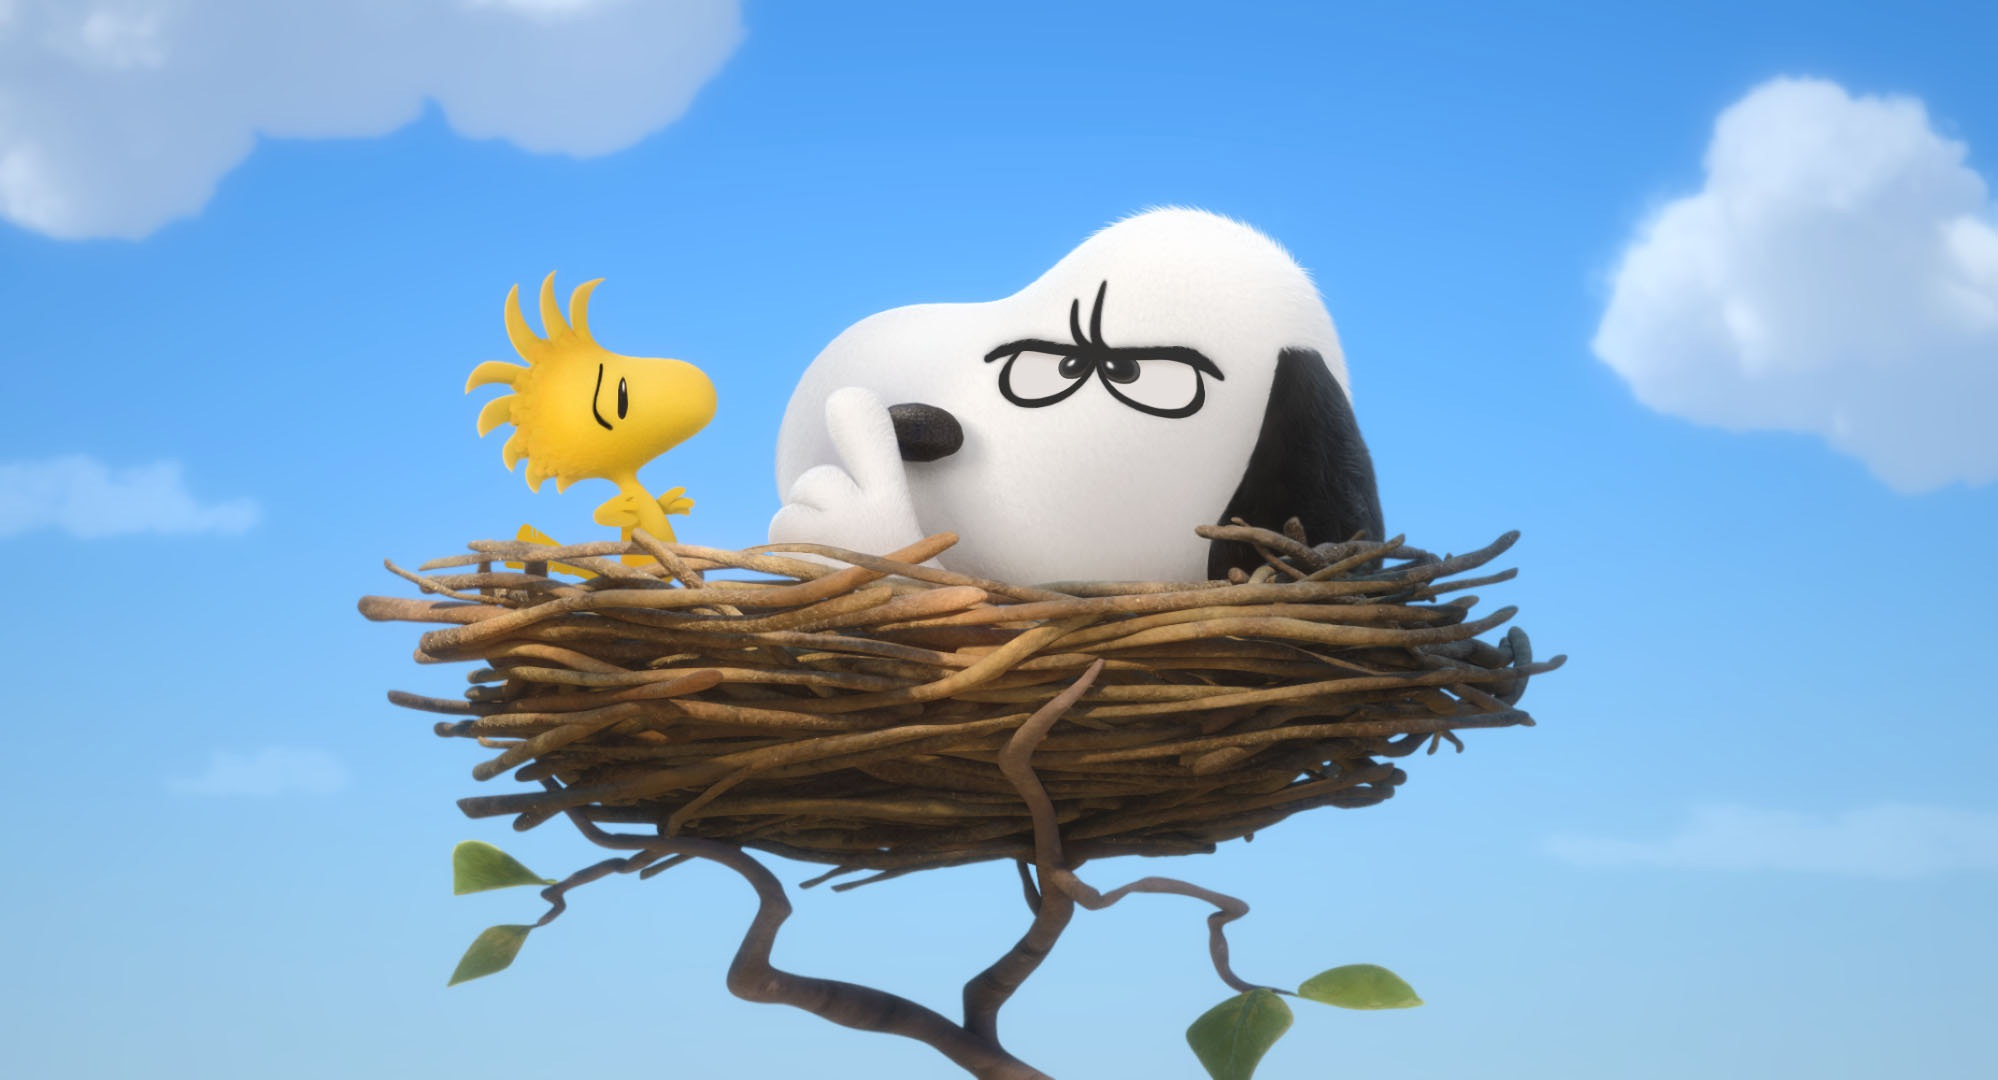 the peanuts movie wallpapers high resolution and quality download